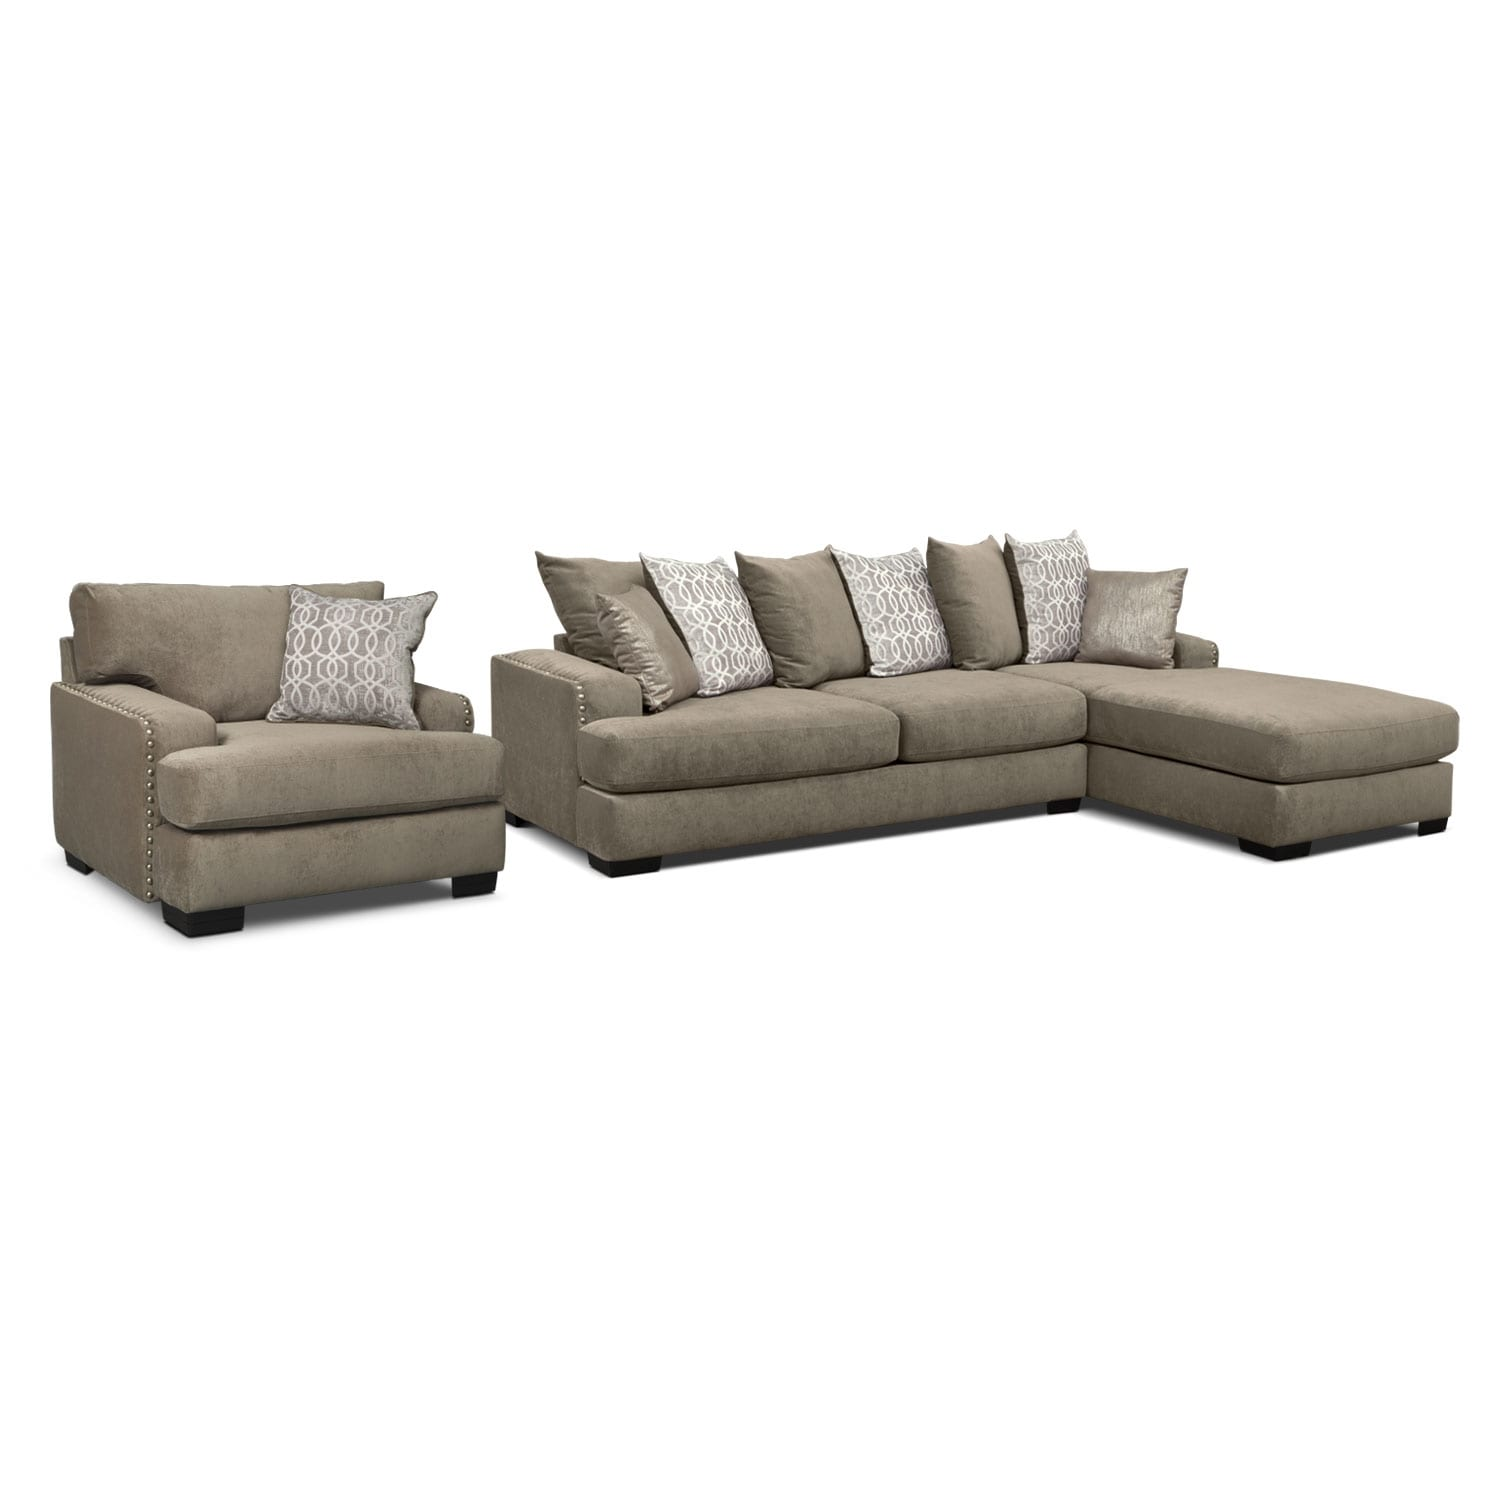 Tempo 2-Piece Sectional with Right-Facing Chaise and Chair Set - Platinum